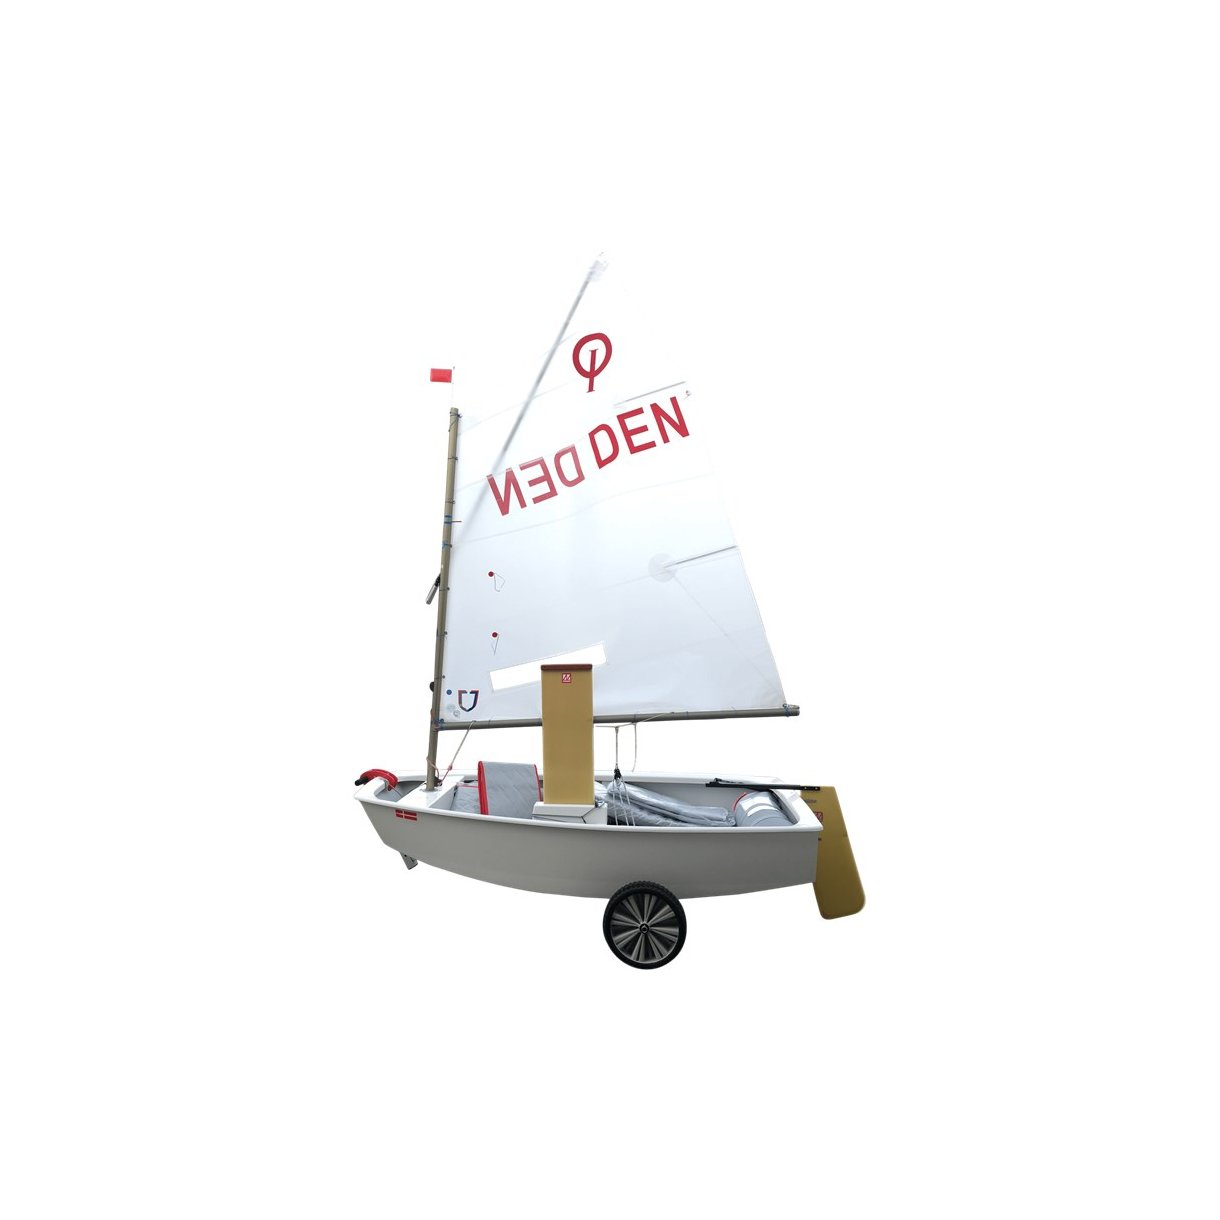 2018 Chartered Winner 3D Star Package (Hull, Spars, Blades, Sail)